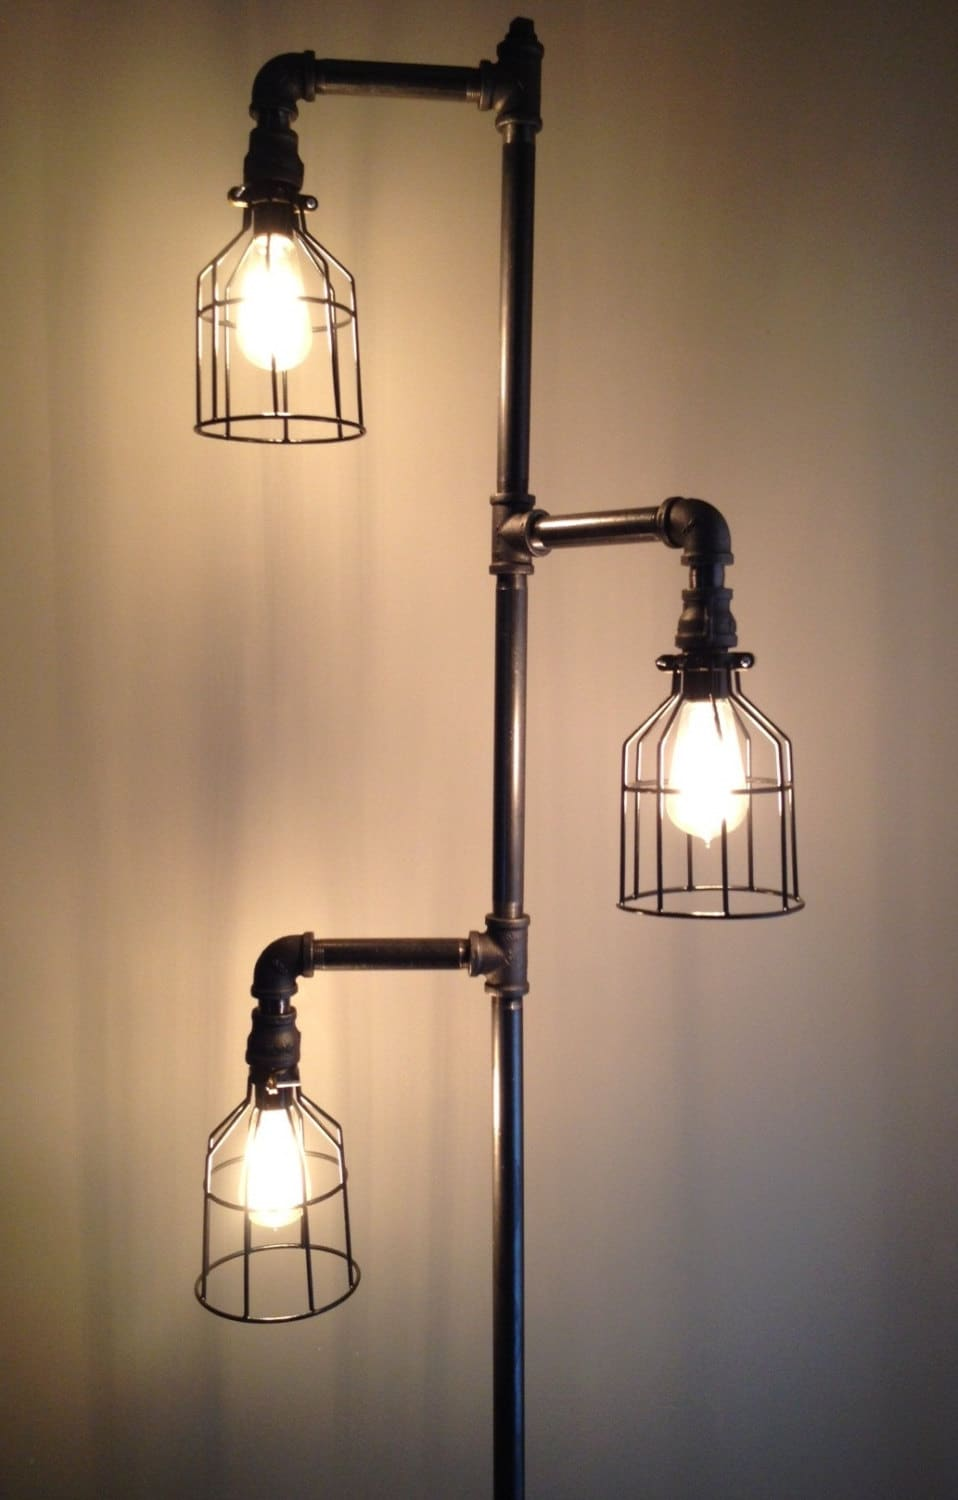 industrial plumbing pipe floor lamp. Black Bedroom Furniture Sets. Home Design Ideas